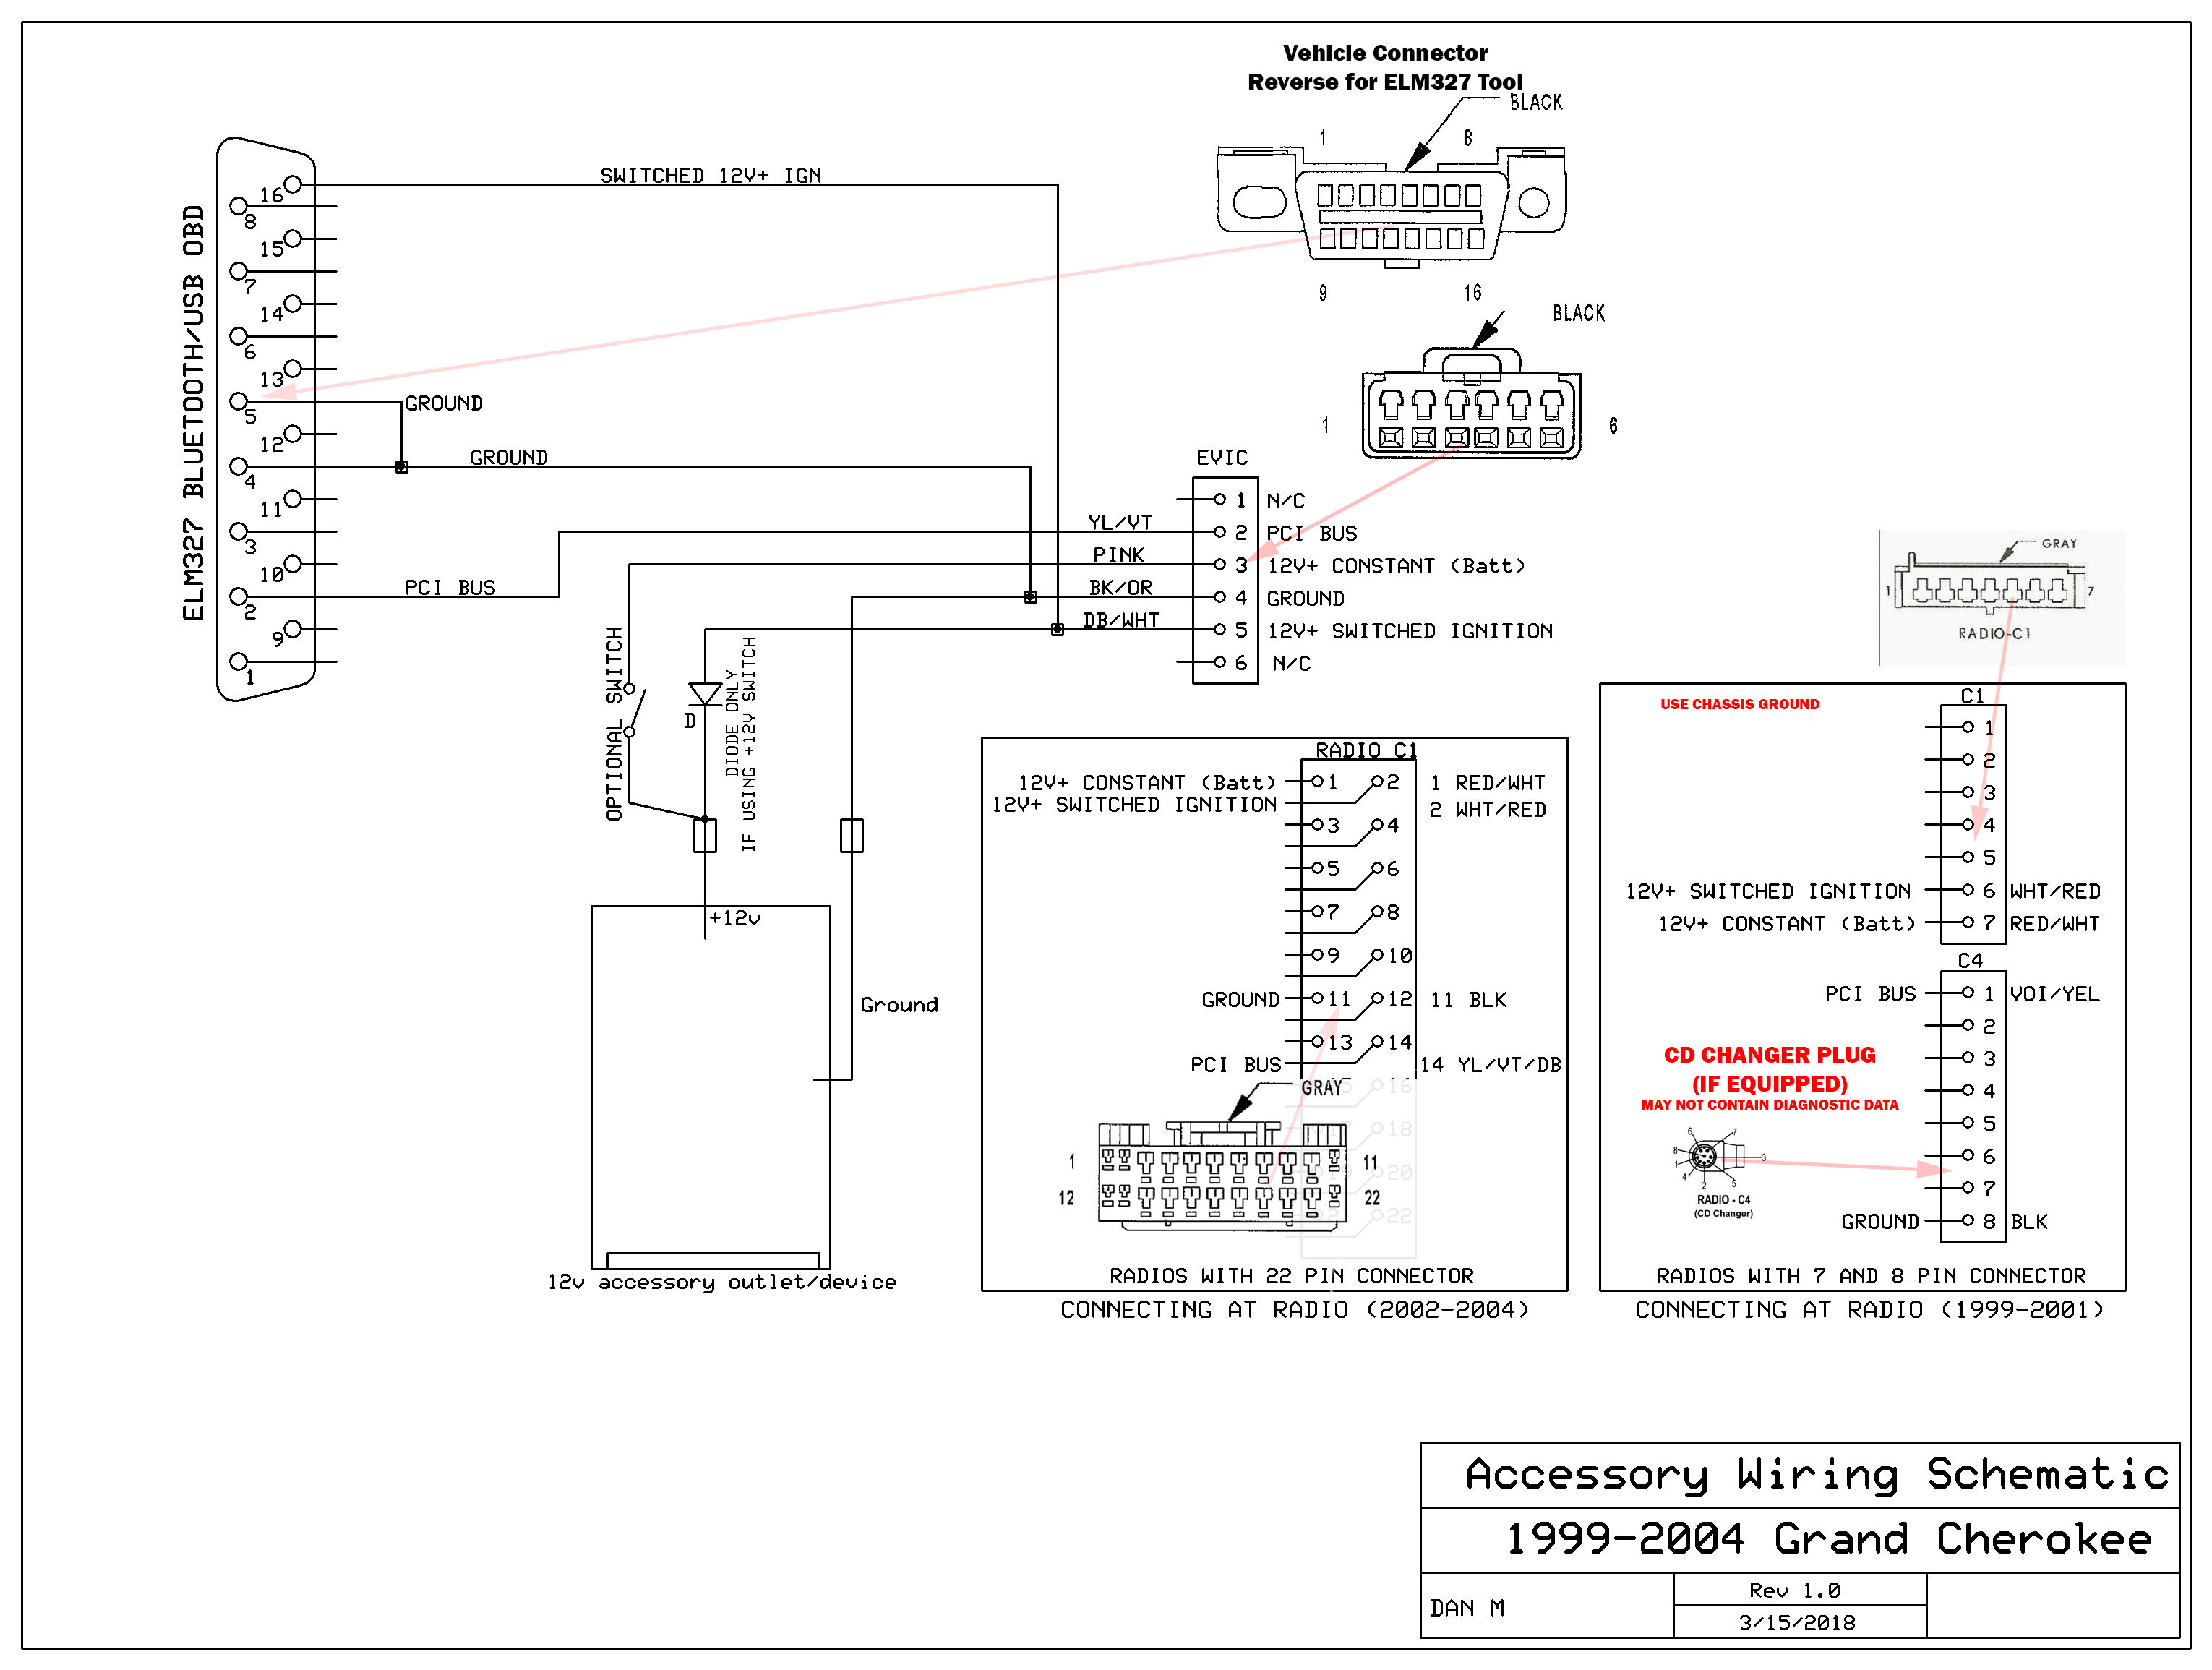 2007 Dodge Ram 1500 Stereo Wiring Diagram from i.imgur.com